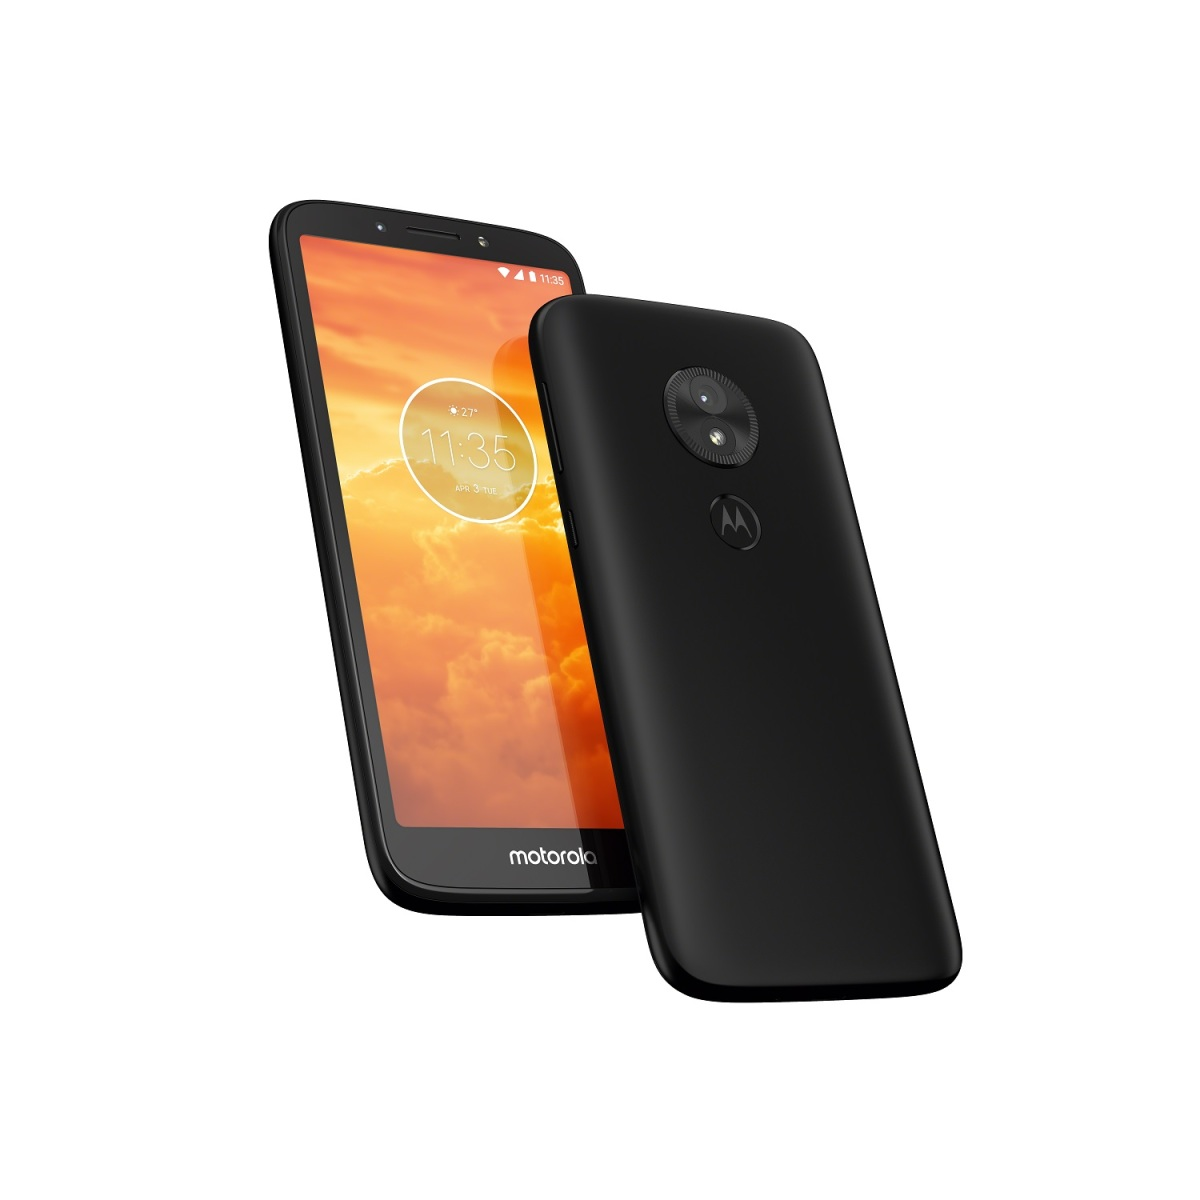 Moto e5 play con Oreo disponible en el Perú